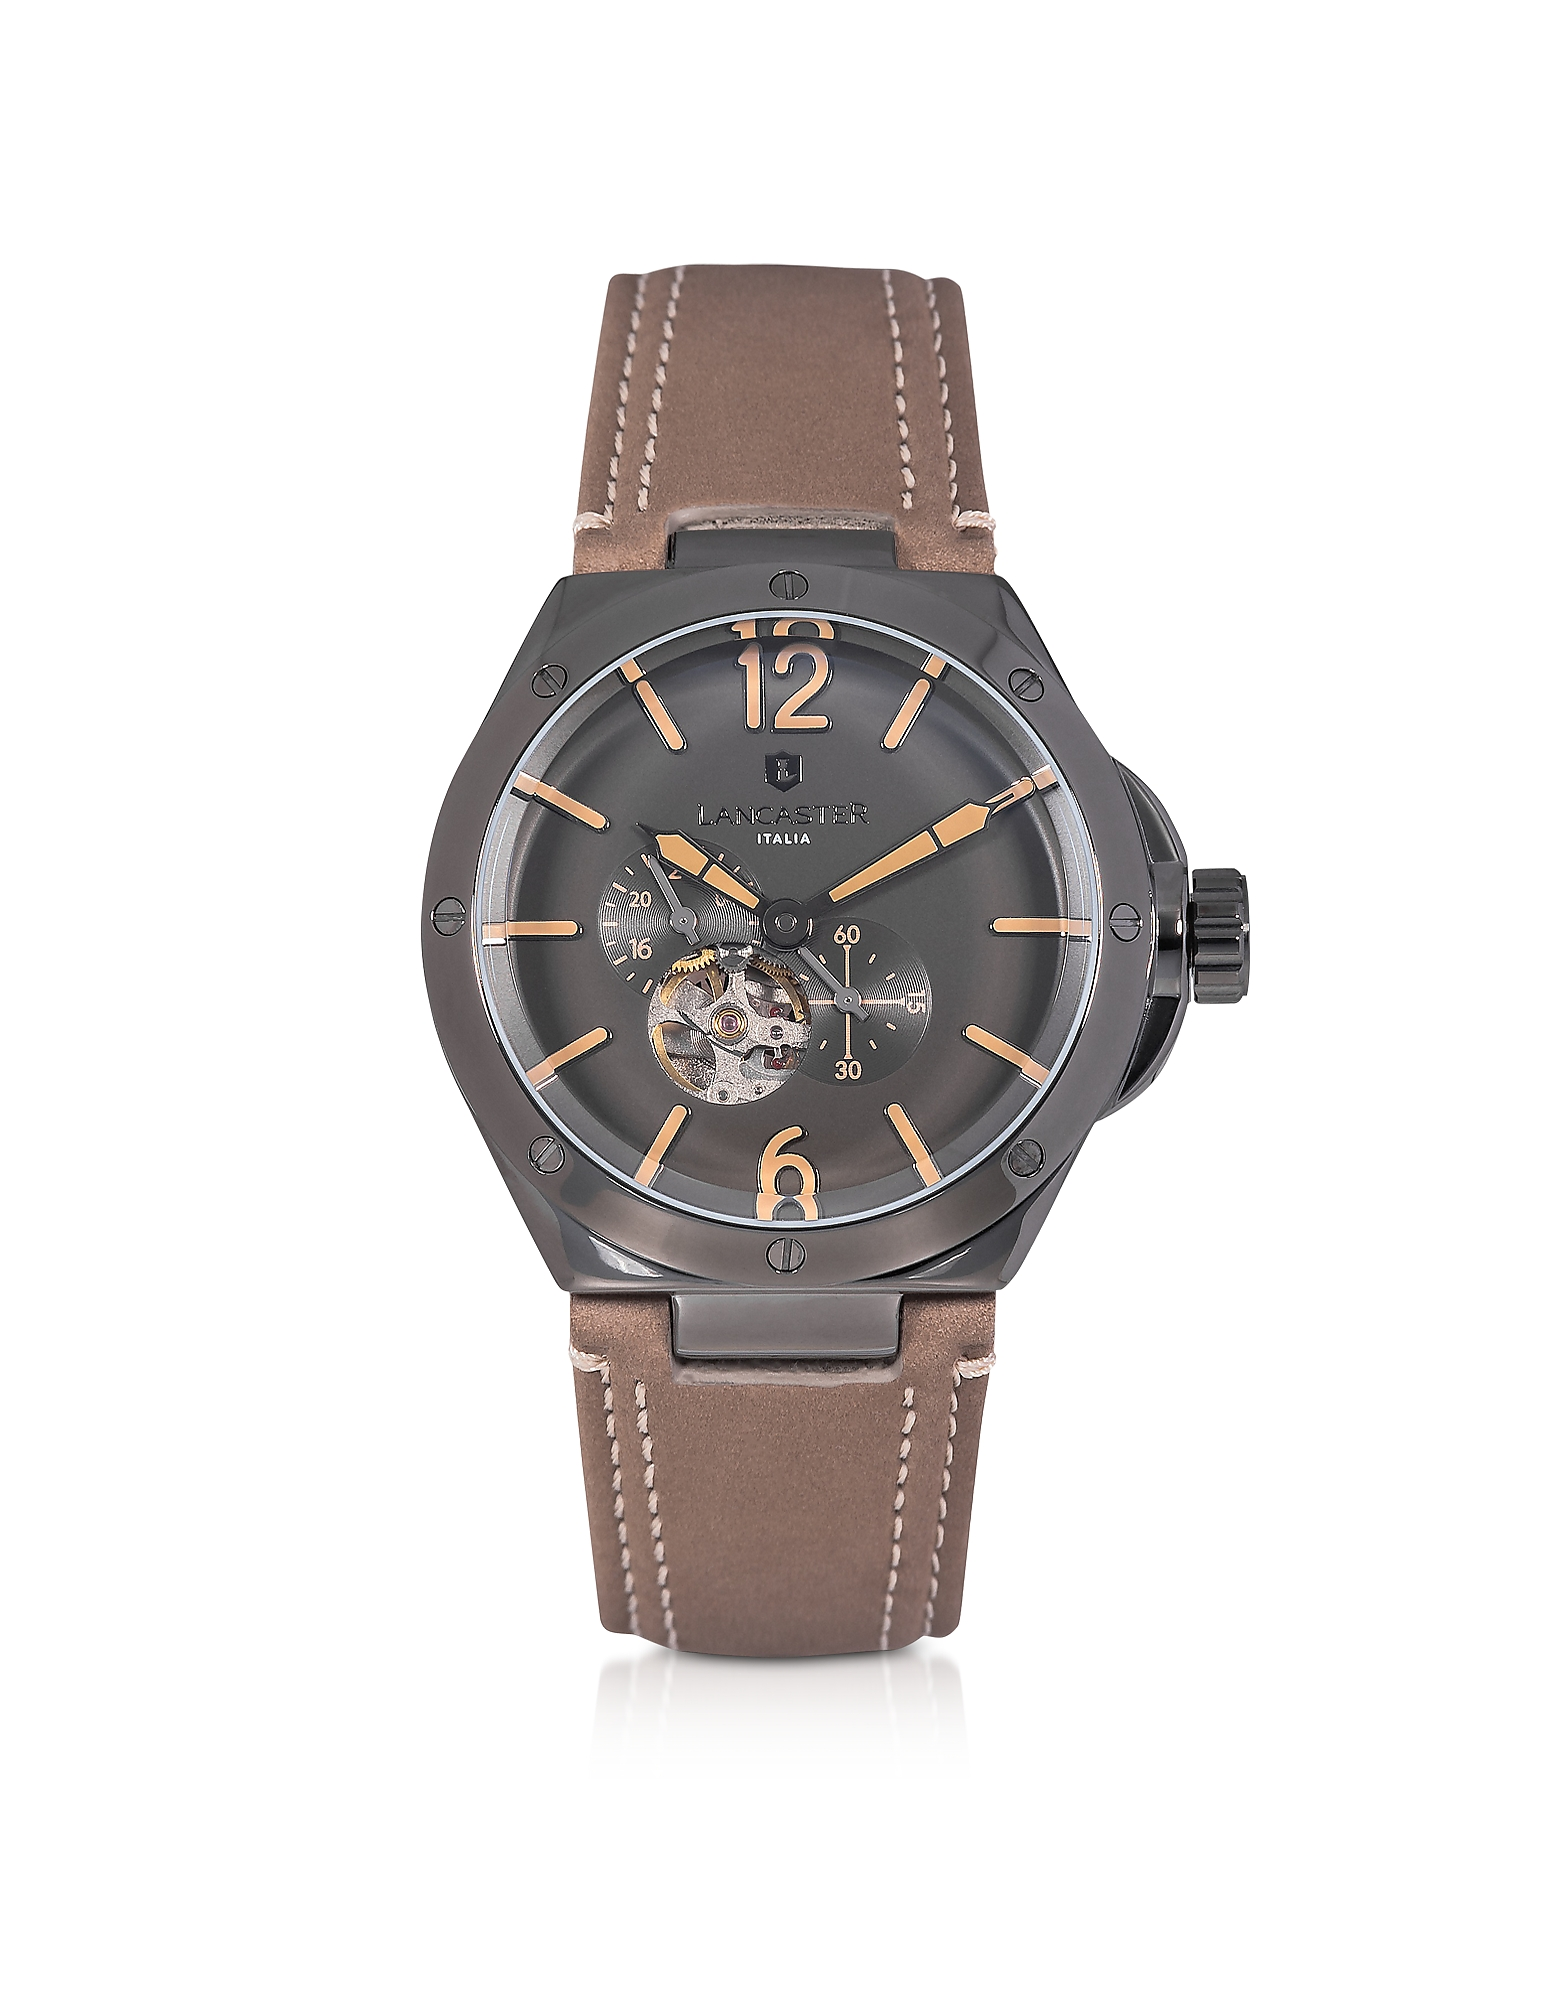 Lancaster Men's Watches, Space Shuttle Meccanico Gunmetal Stainless Steel and Natural Nubuck Men's W